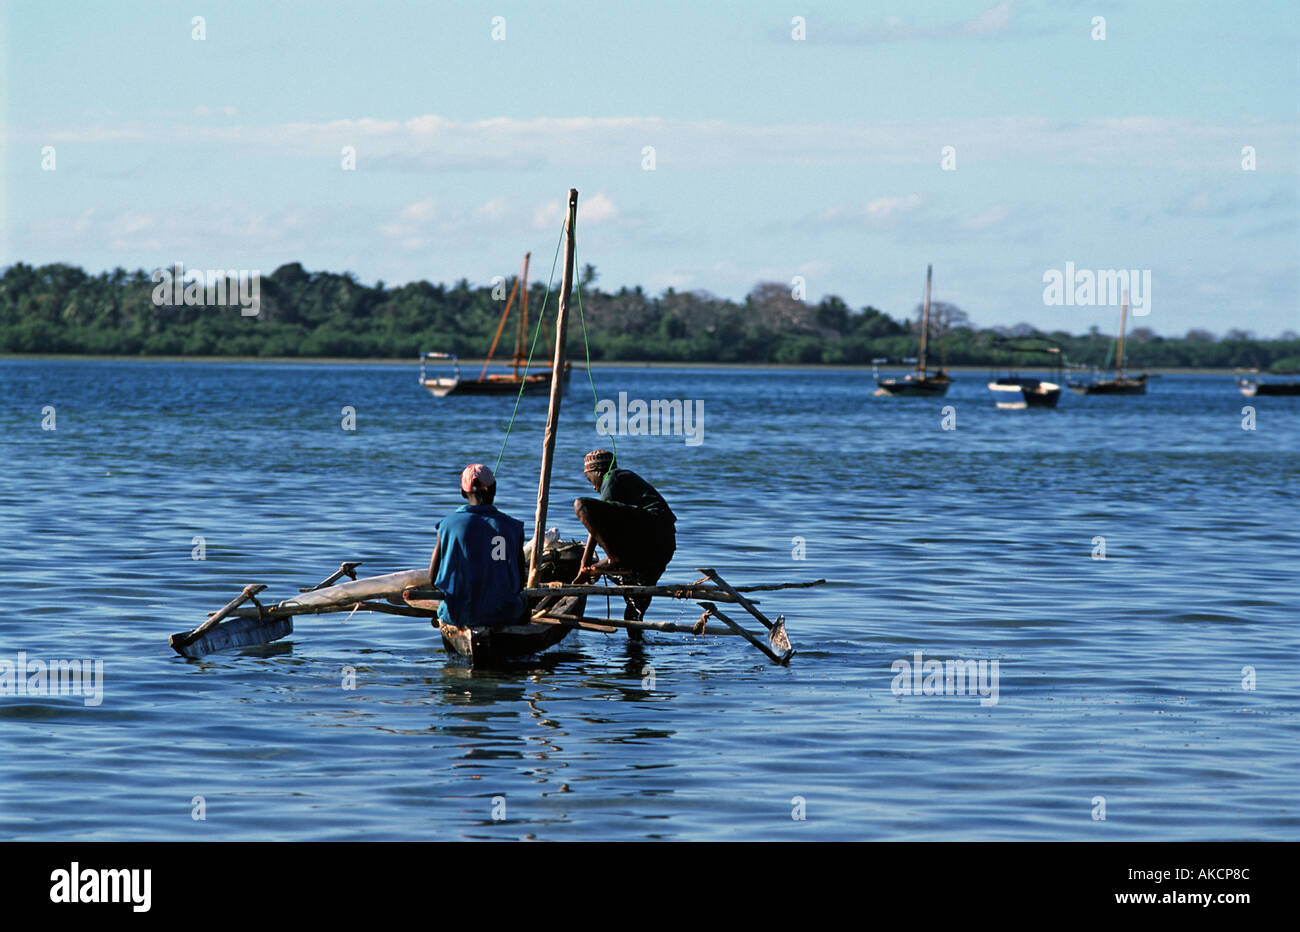 Fishermen in their outrigger canoe in the straits between Mafia and Chole island Utende Mafia lies in the Indian Ocean TANZANIA - Stock Image